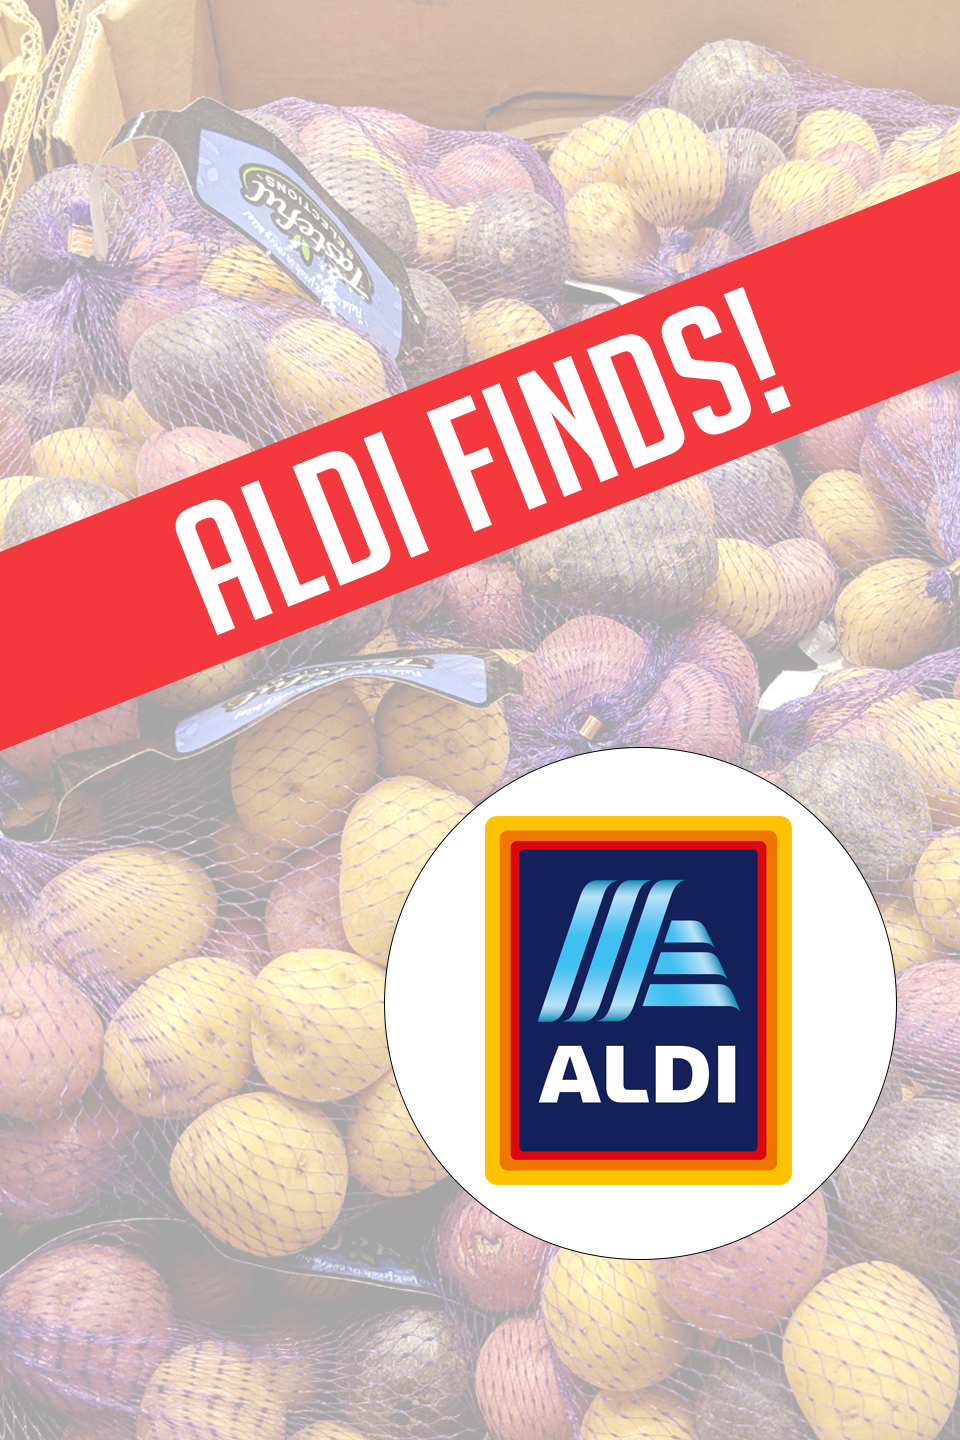 jodiloves-aldi-finds-logo1.jpg